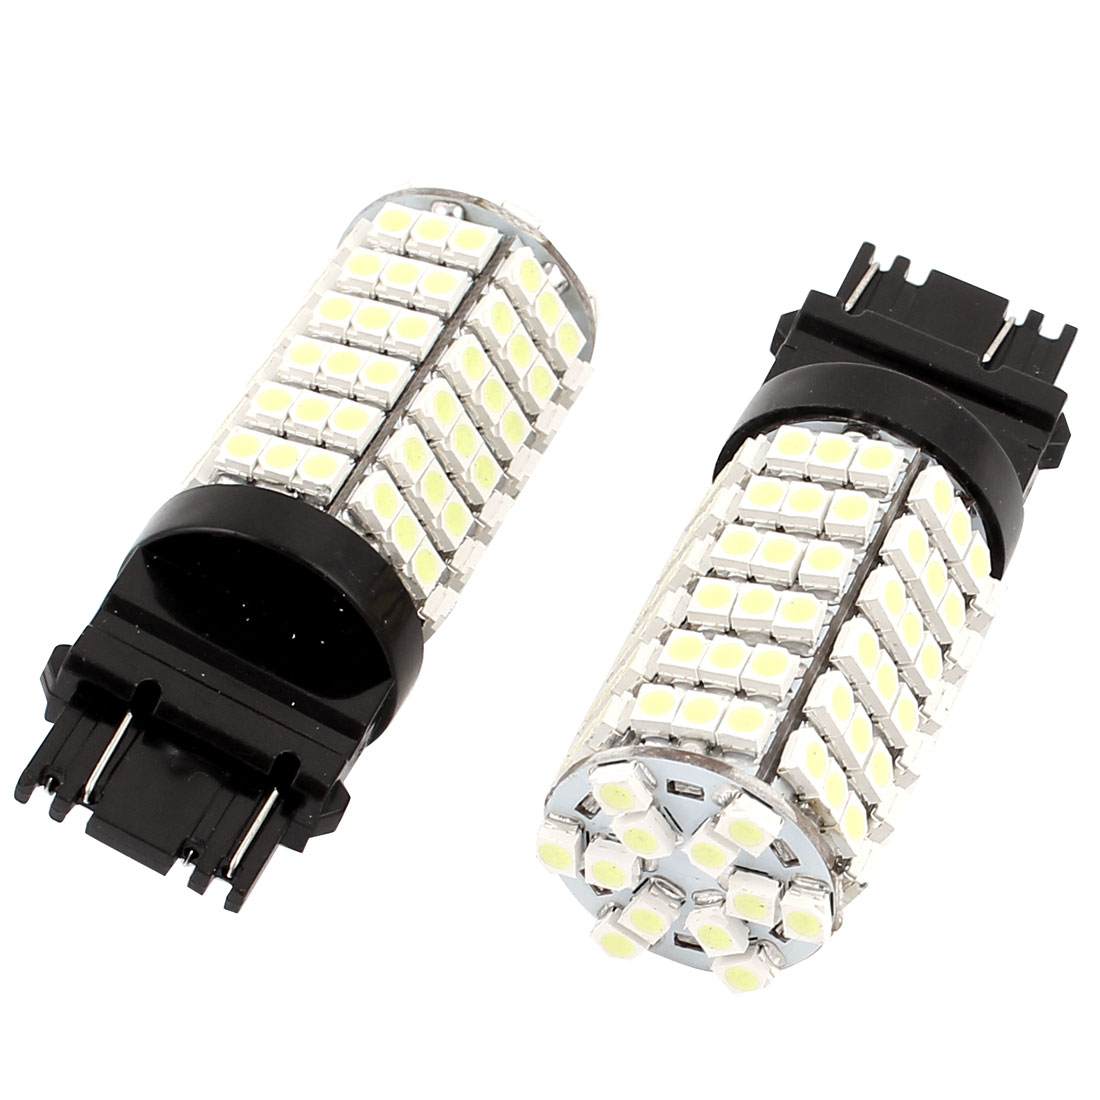 2 Pcs 7443 1210 SMD 120 LED Auto Marker Light Signal Lamp Bulb White DC 12V 7444 992A